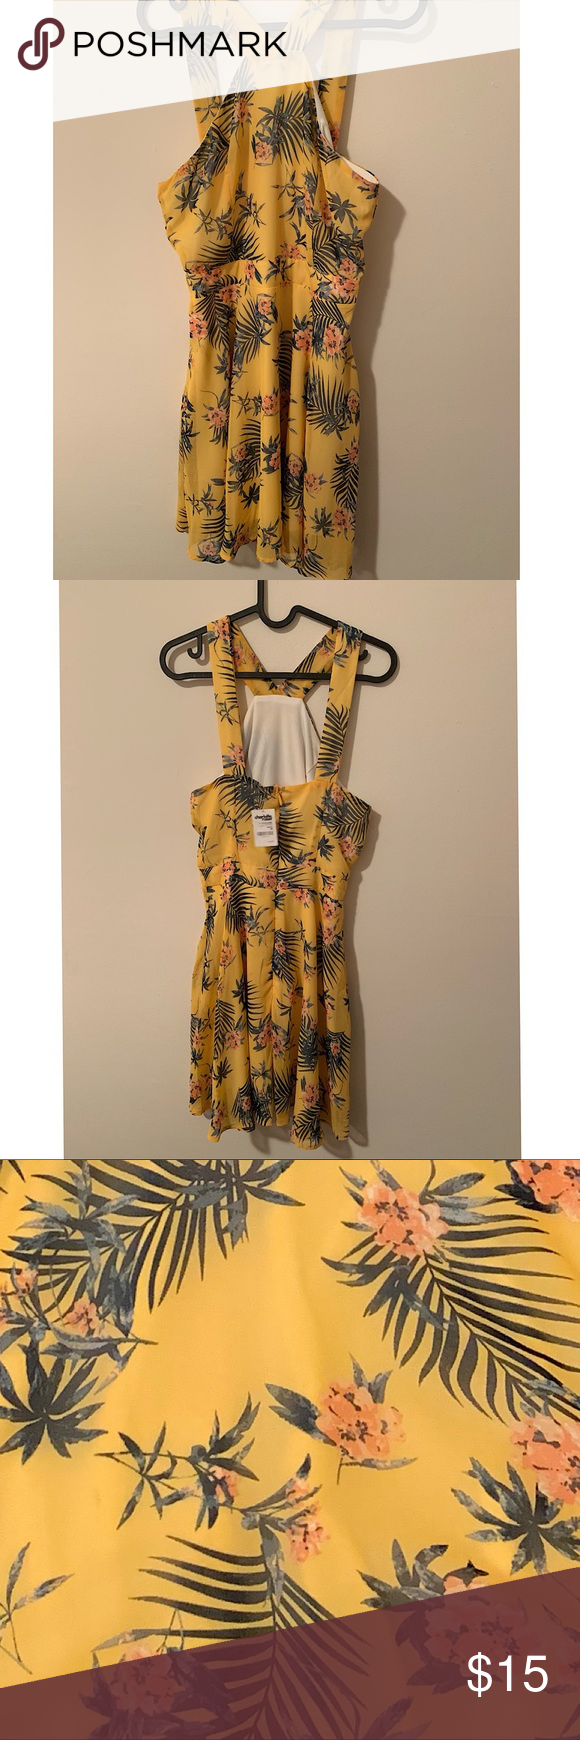 "Lovely dress. It has a very  ""Florida"" feel. NWT. Charlotte Russe short sundress, yellow with flowers. Very tropical. Size Medium. Charlotte Russe Dresses Mini #shortsundress"